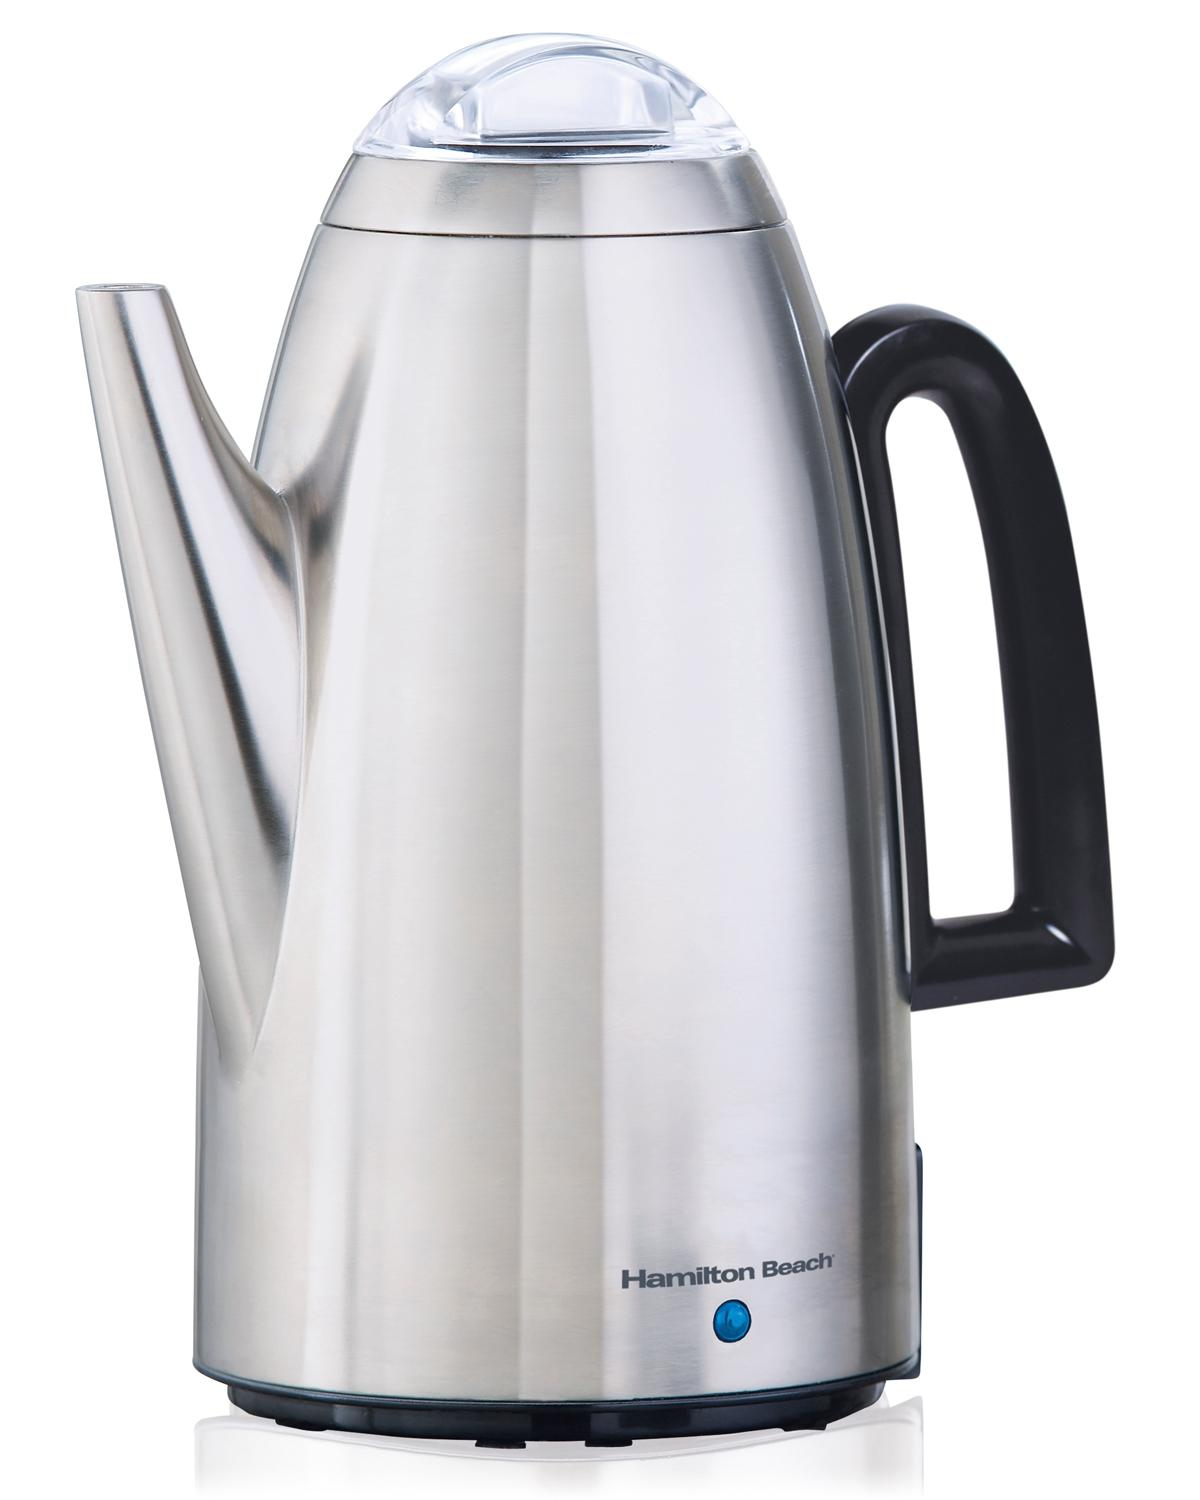 Top Rated Single Serve Coffee Maker stainless steel large commercial urns best rated reviews ...